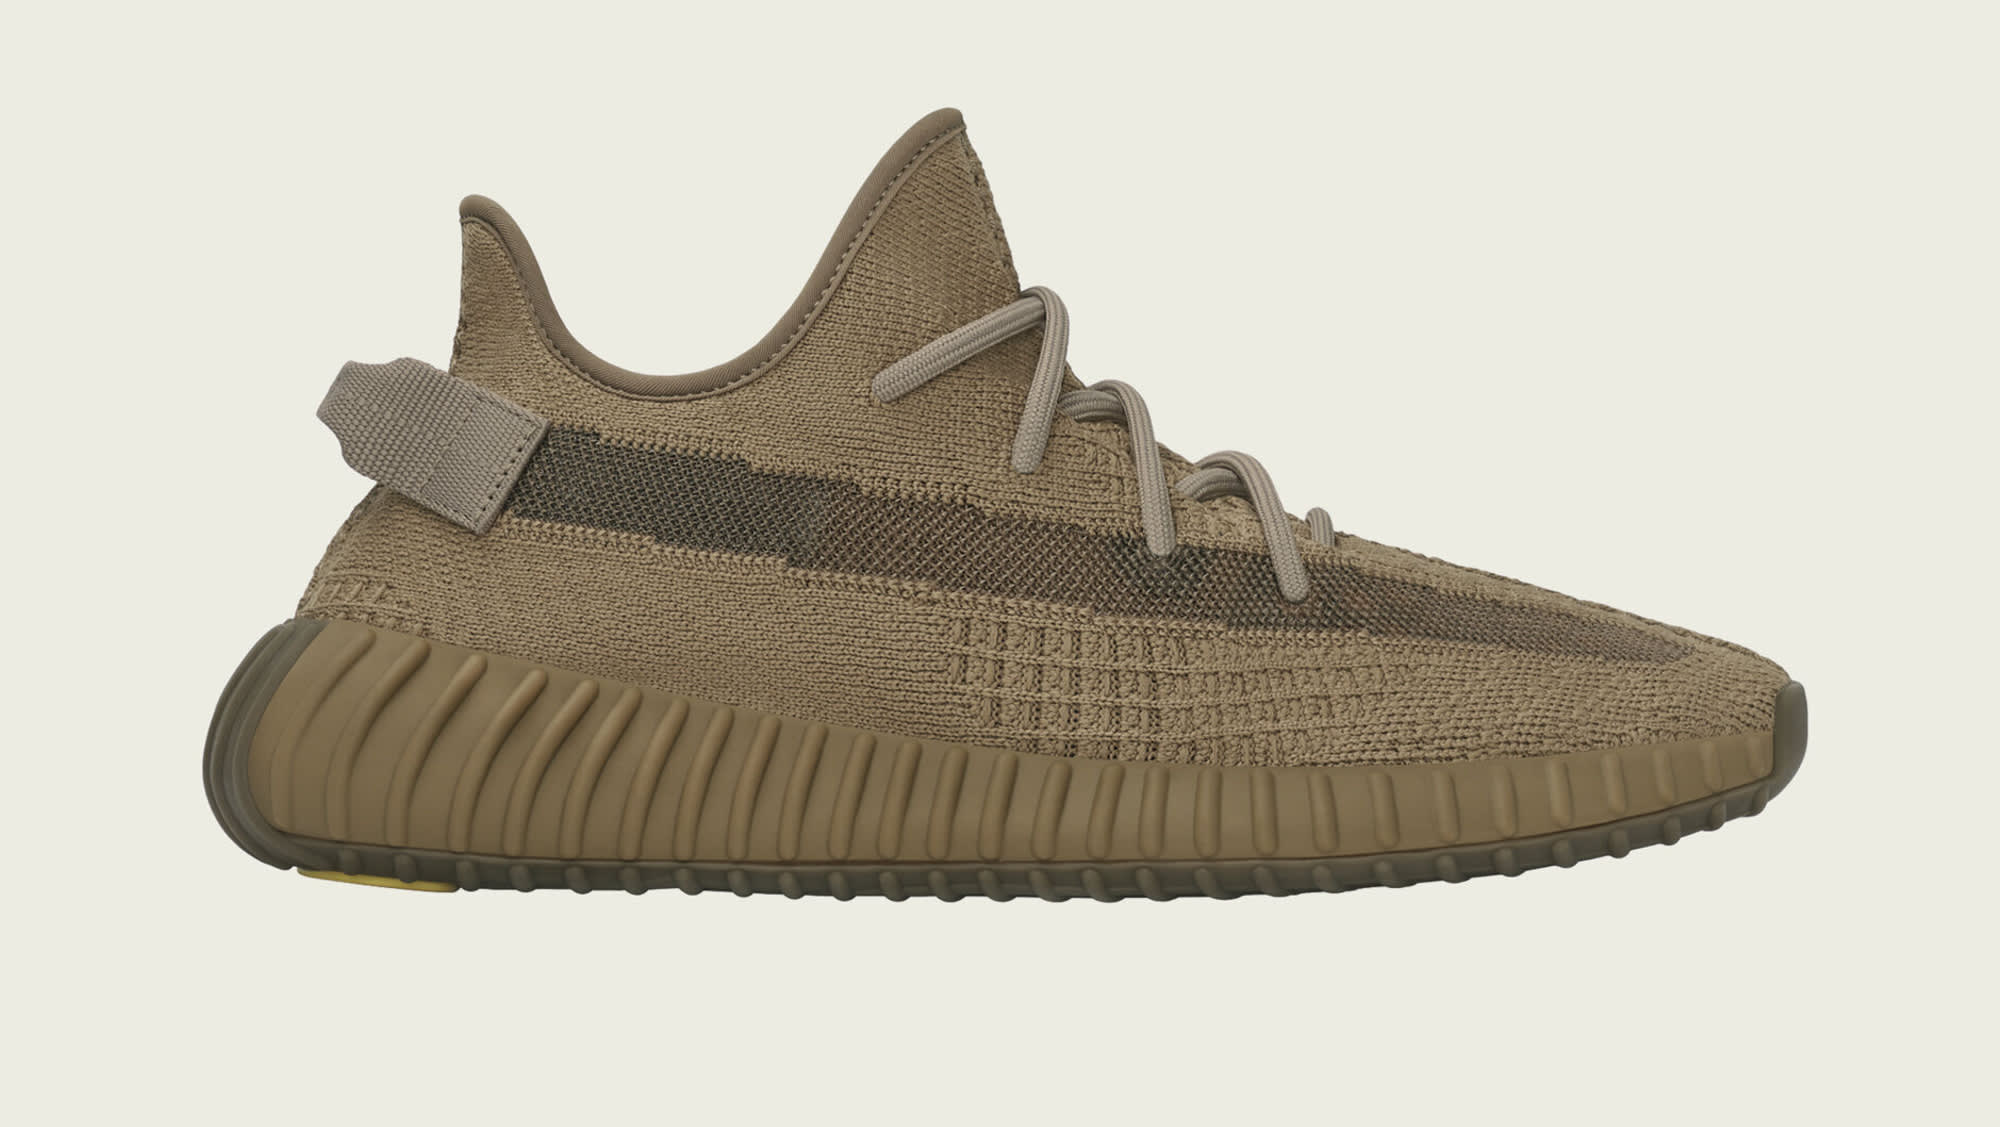 adidas-yeezy-boost-350-v2-earth-fx9033-release-date